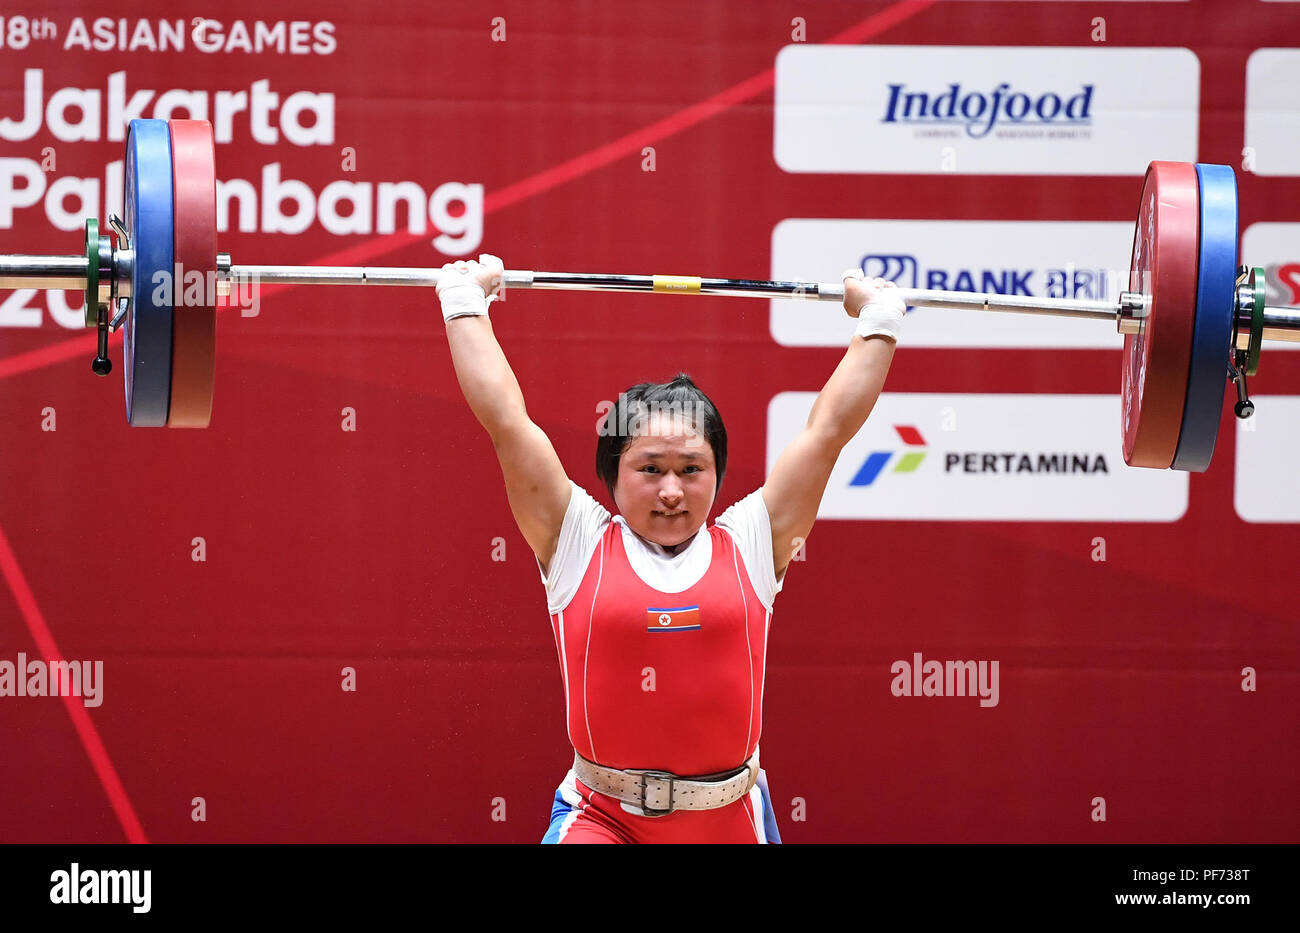 Jakarta, Indonesia. 20th Aug, 2018. Ri Song Gum of the Democratic People's Republic of Korea competes during the women's weightlifting 48kg final at the 18th Asian Games in Jakarta, Indonesia, Aug. 20, 2018. Credit: Li He/Xinhua/Alamy Live News - Stock Image